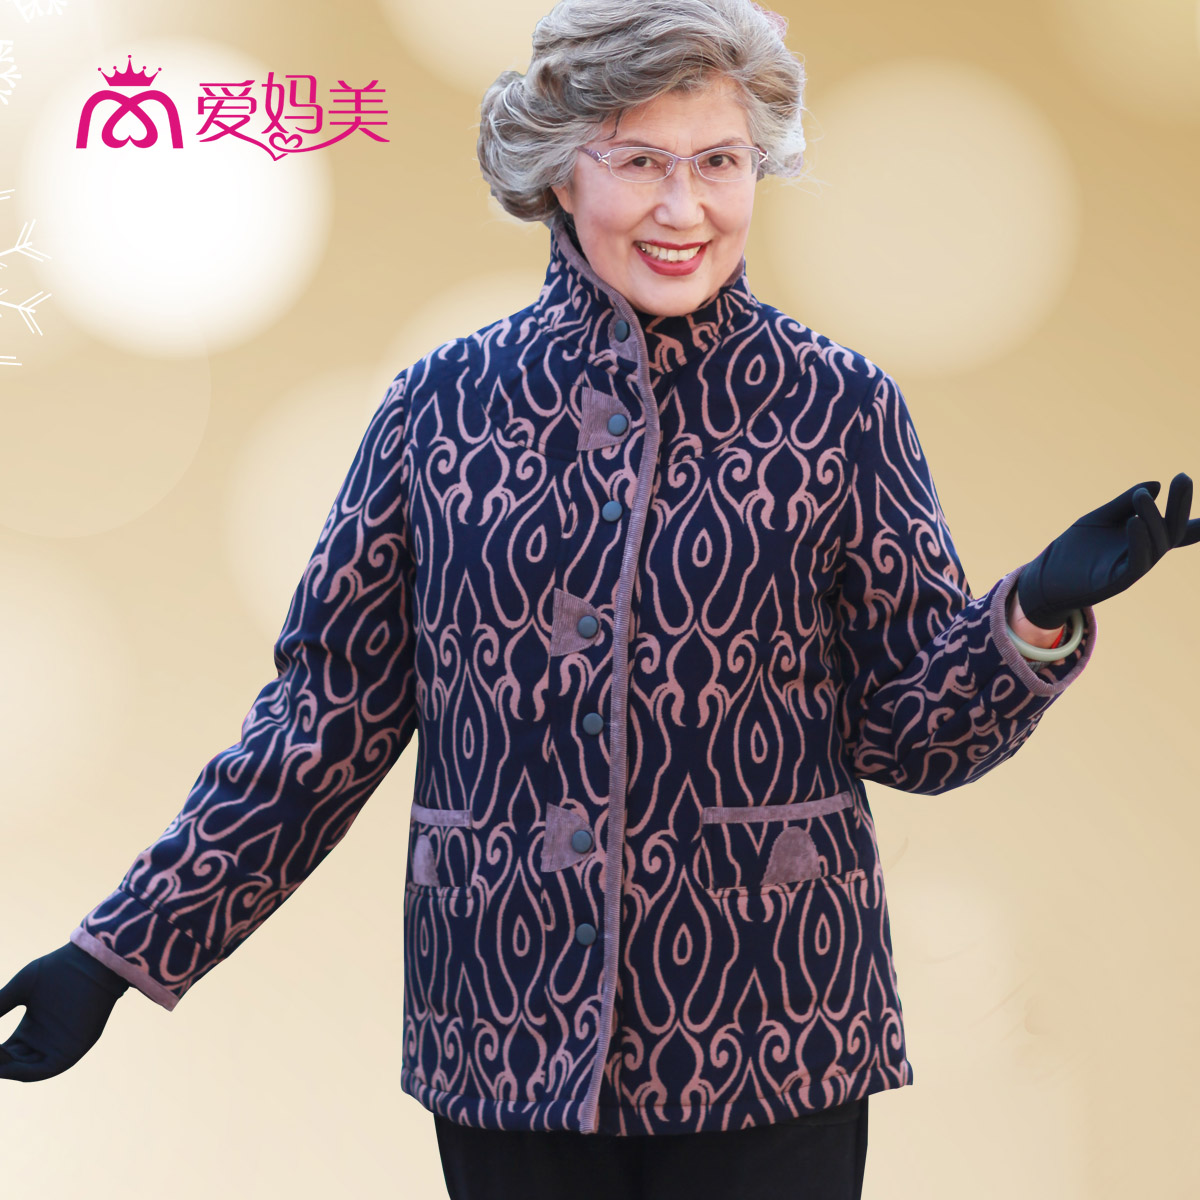 Love mom us new thicker middle-aged woman mother dress coat jacket elderly woman padded winter coat dress # m1390